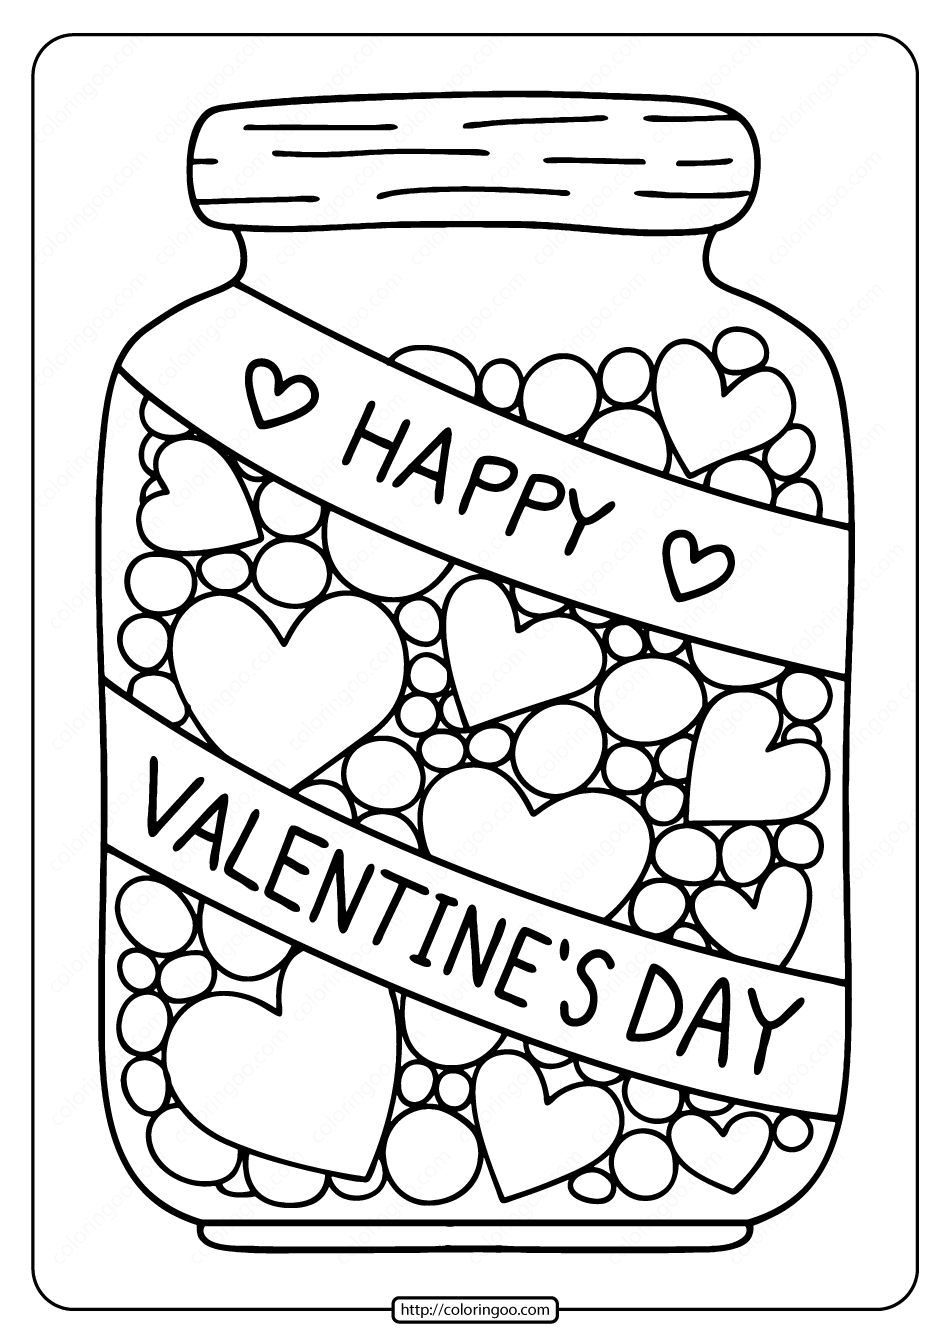 Free Printable Hearts in a Jar Coloring Page